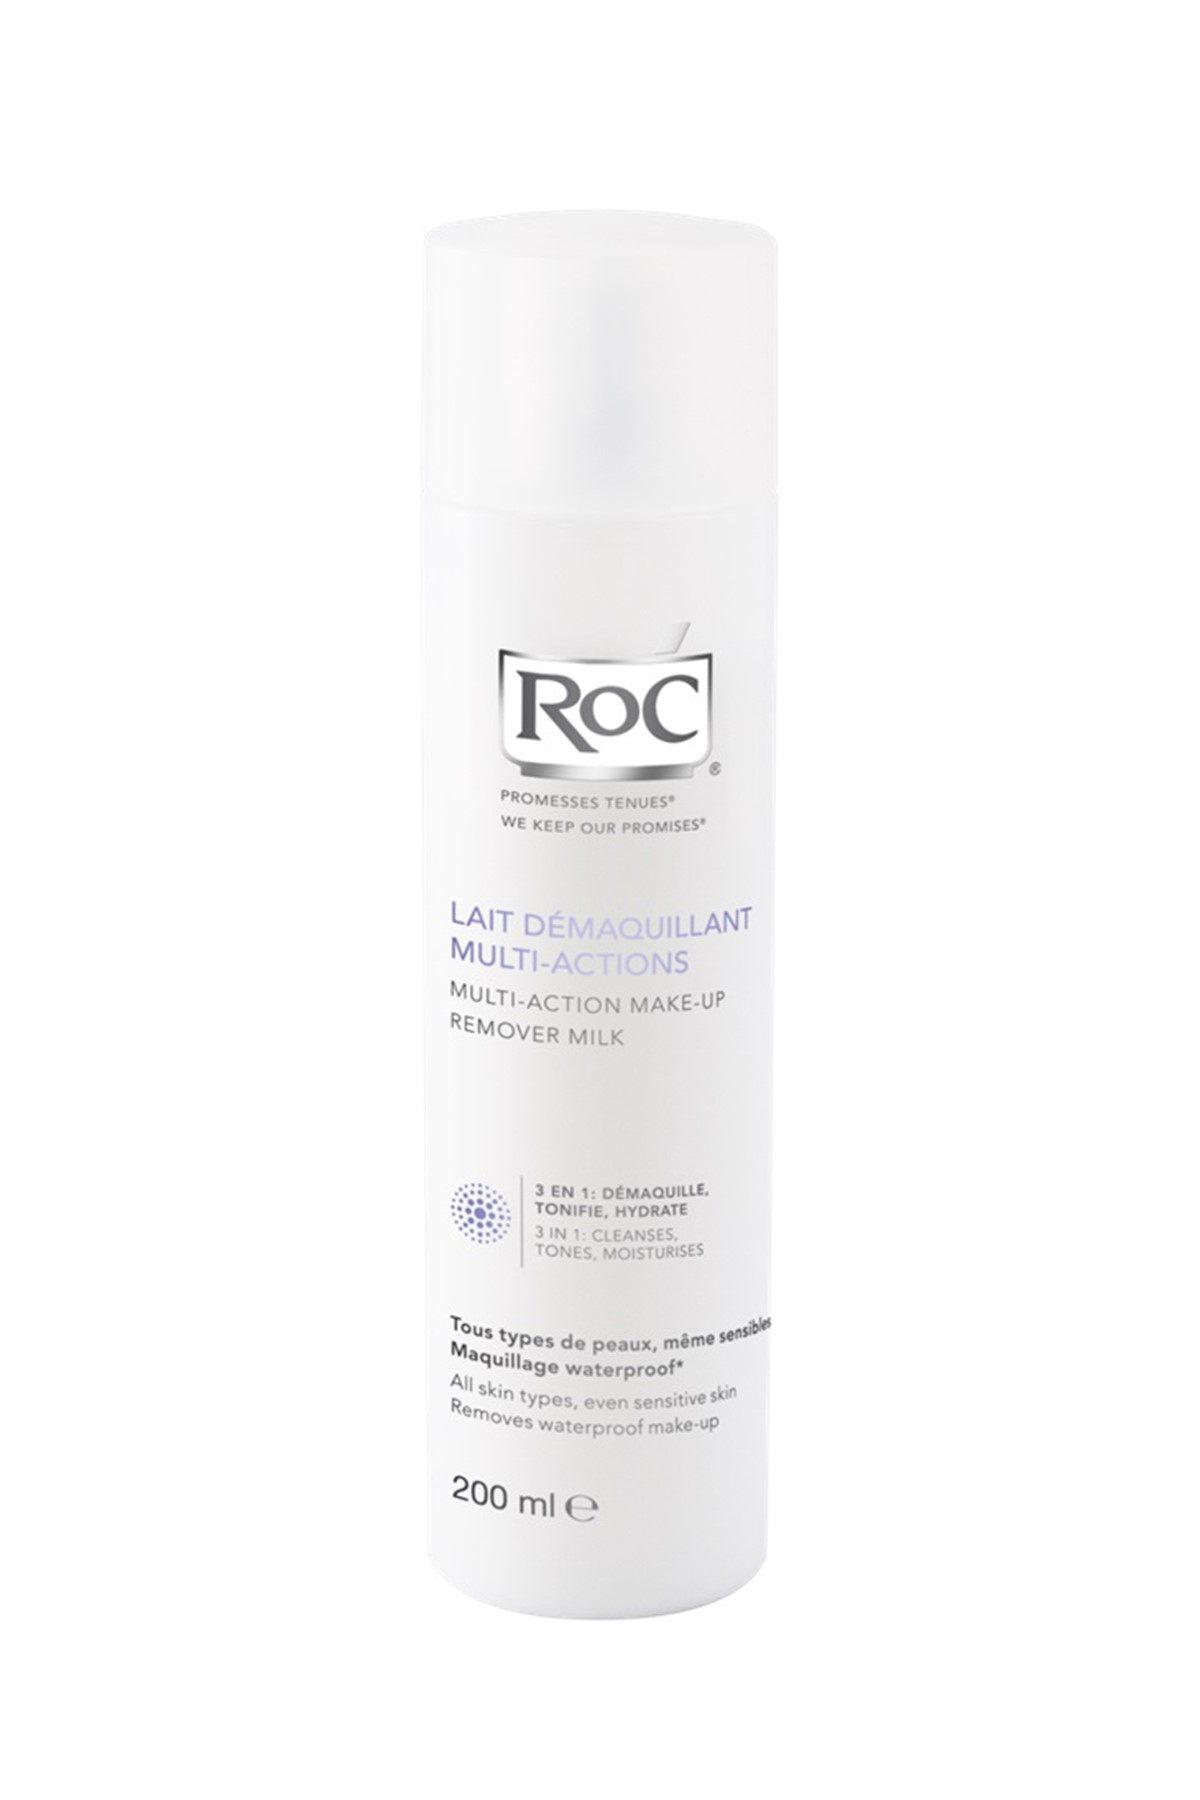 ROC Multi-Action Make-Up Remover Milk (All Skin Types) 200ml